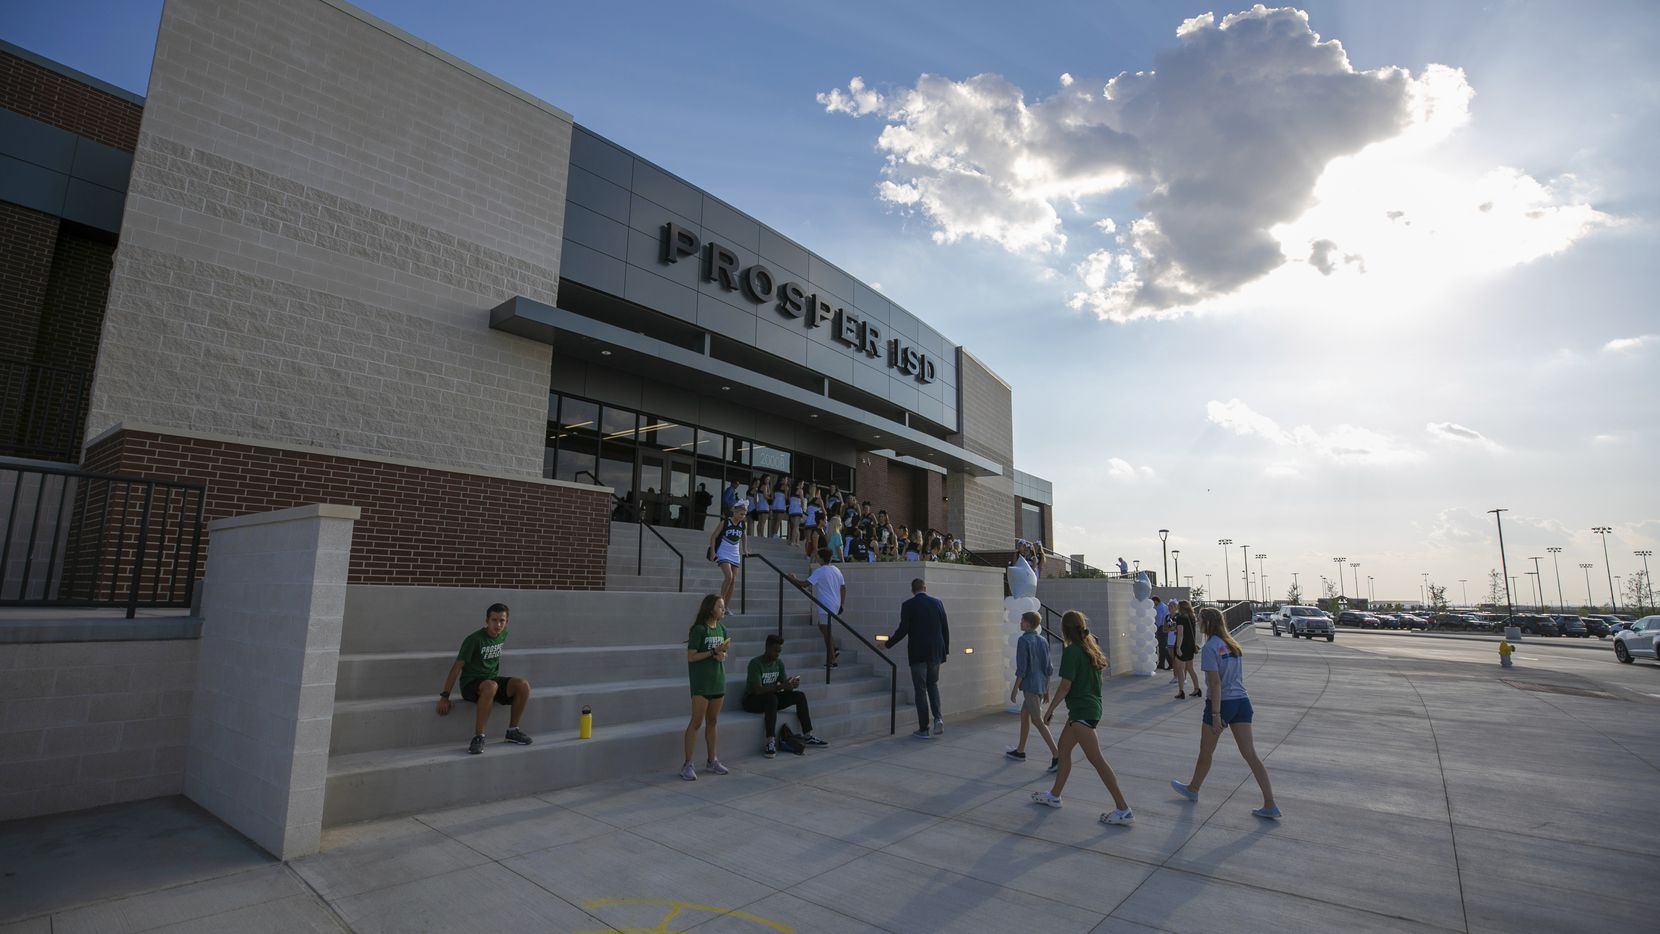 The naming rights to Children's Health Stadium in Prosper, which opened in August, is part of a $5 million deal between Prosper ISD and the leading pediatric provider in Dallas.